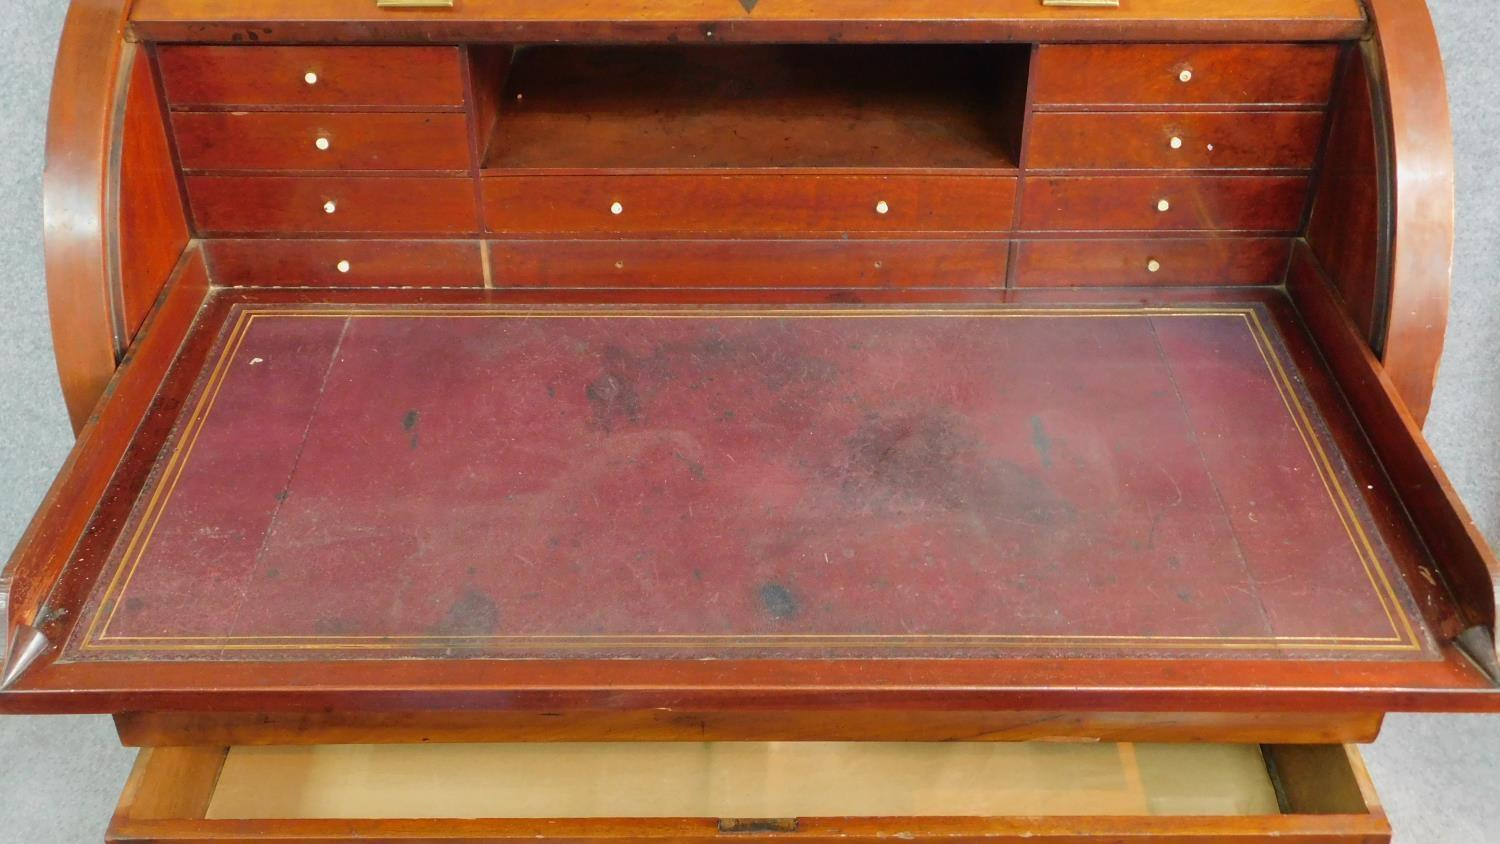 A 19th century continental mahogany cylinder top bureau with tooled leather lined slide out - Image 4 of 7